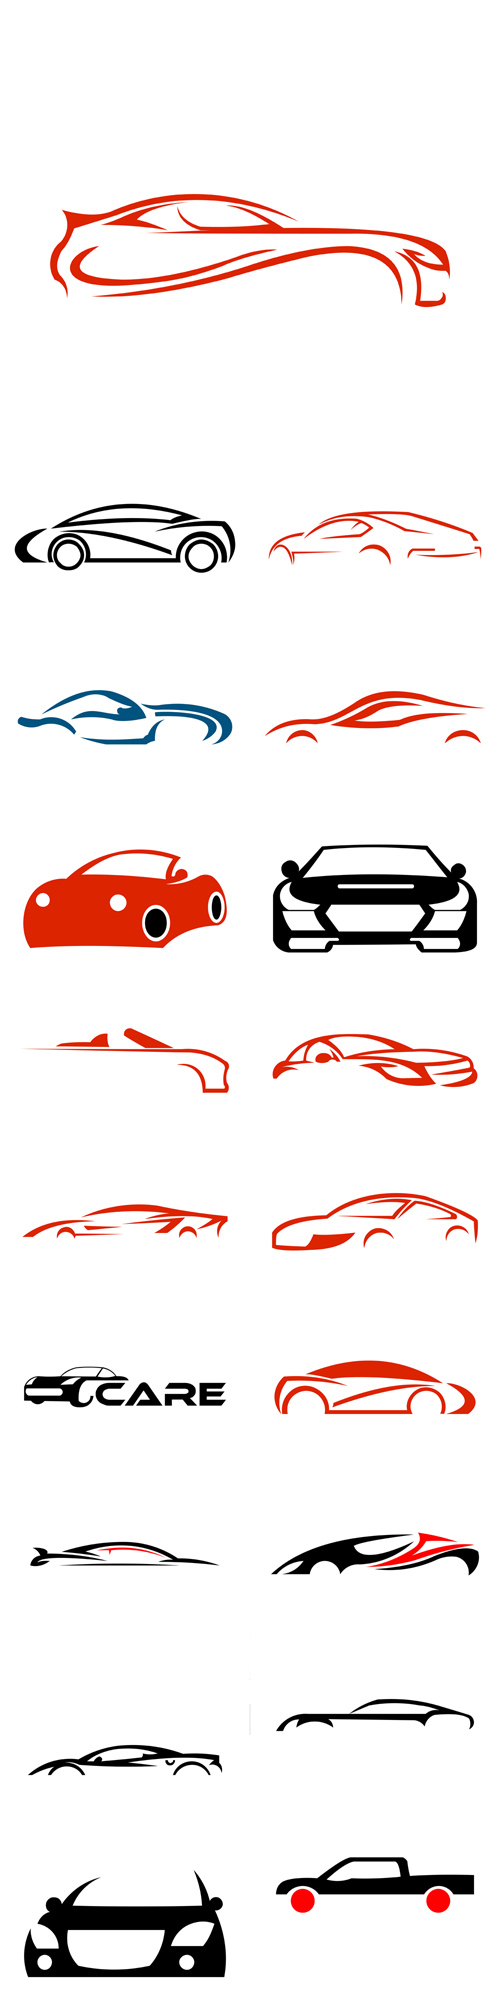 Vector Auto Company Logo Design Concept with Sports Car Silhouette